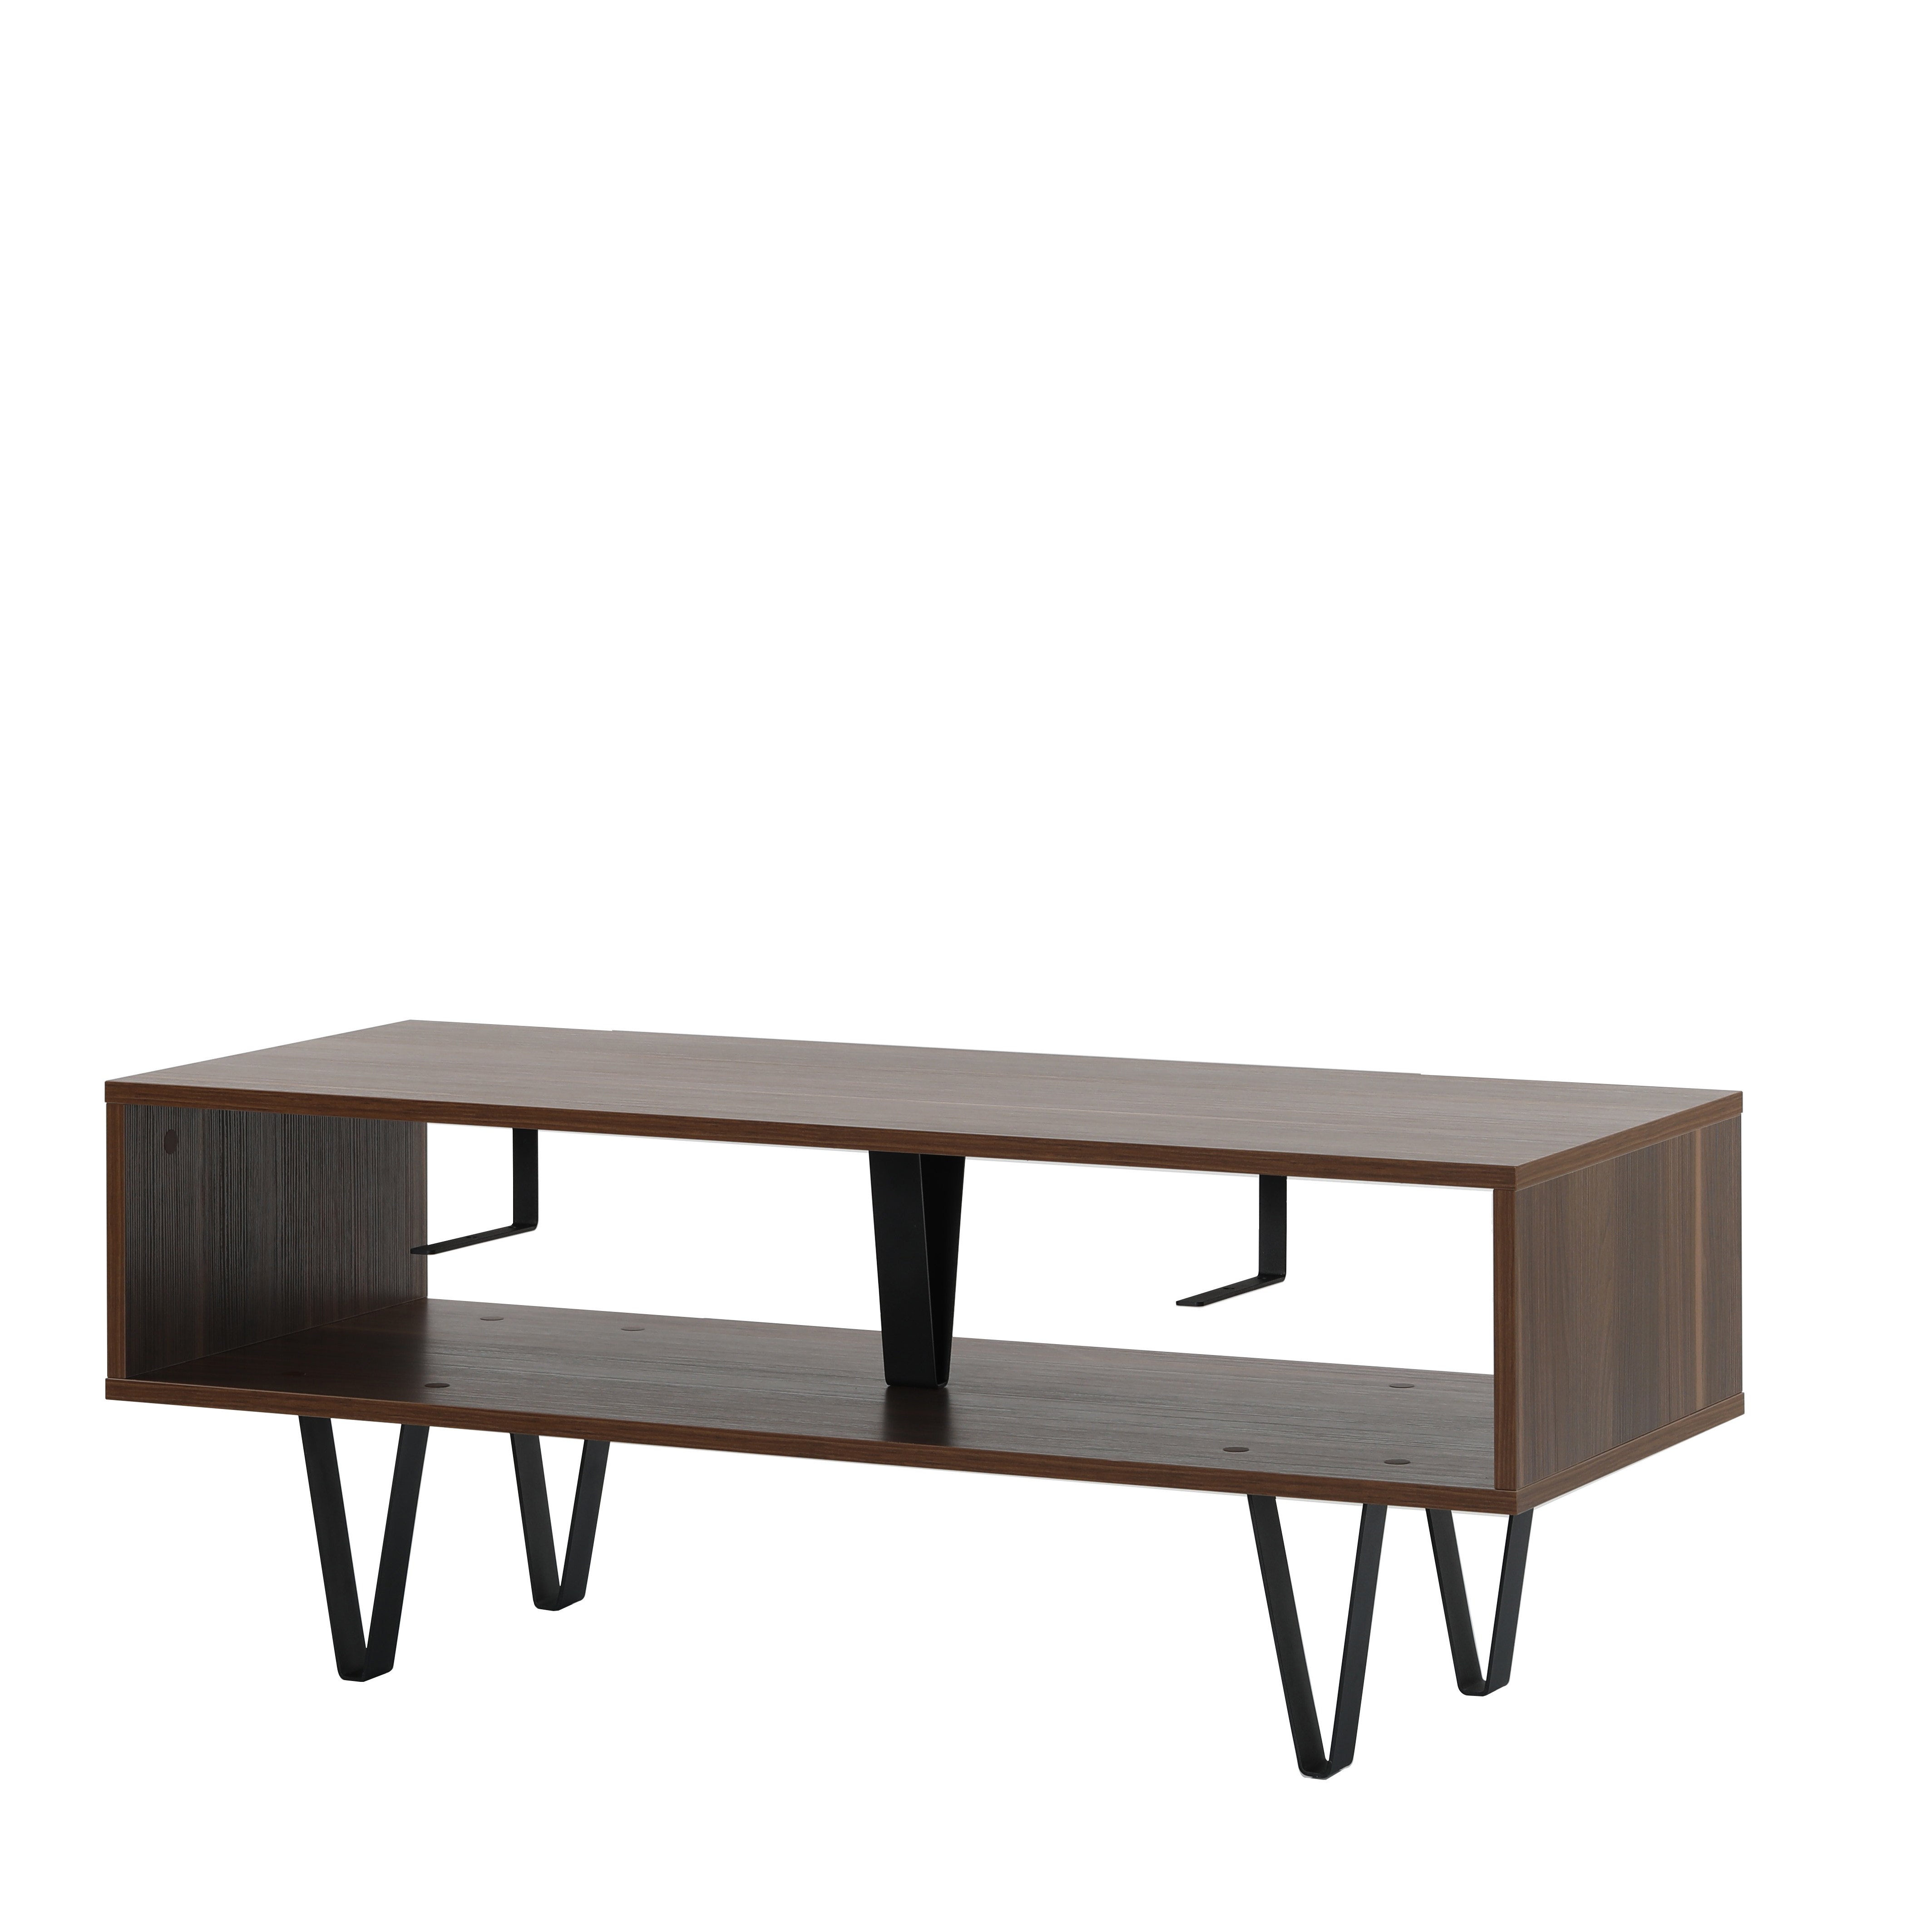 Tv Stand With Side Tables | Wayfair.co.uk In Natural 2 Door Plasma Console Tables (Gallery 12 of 20)